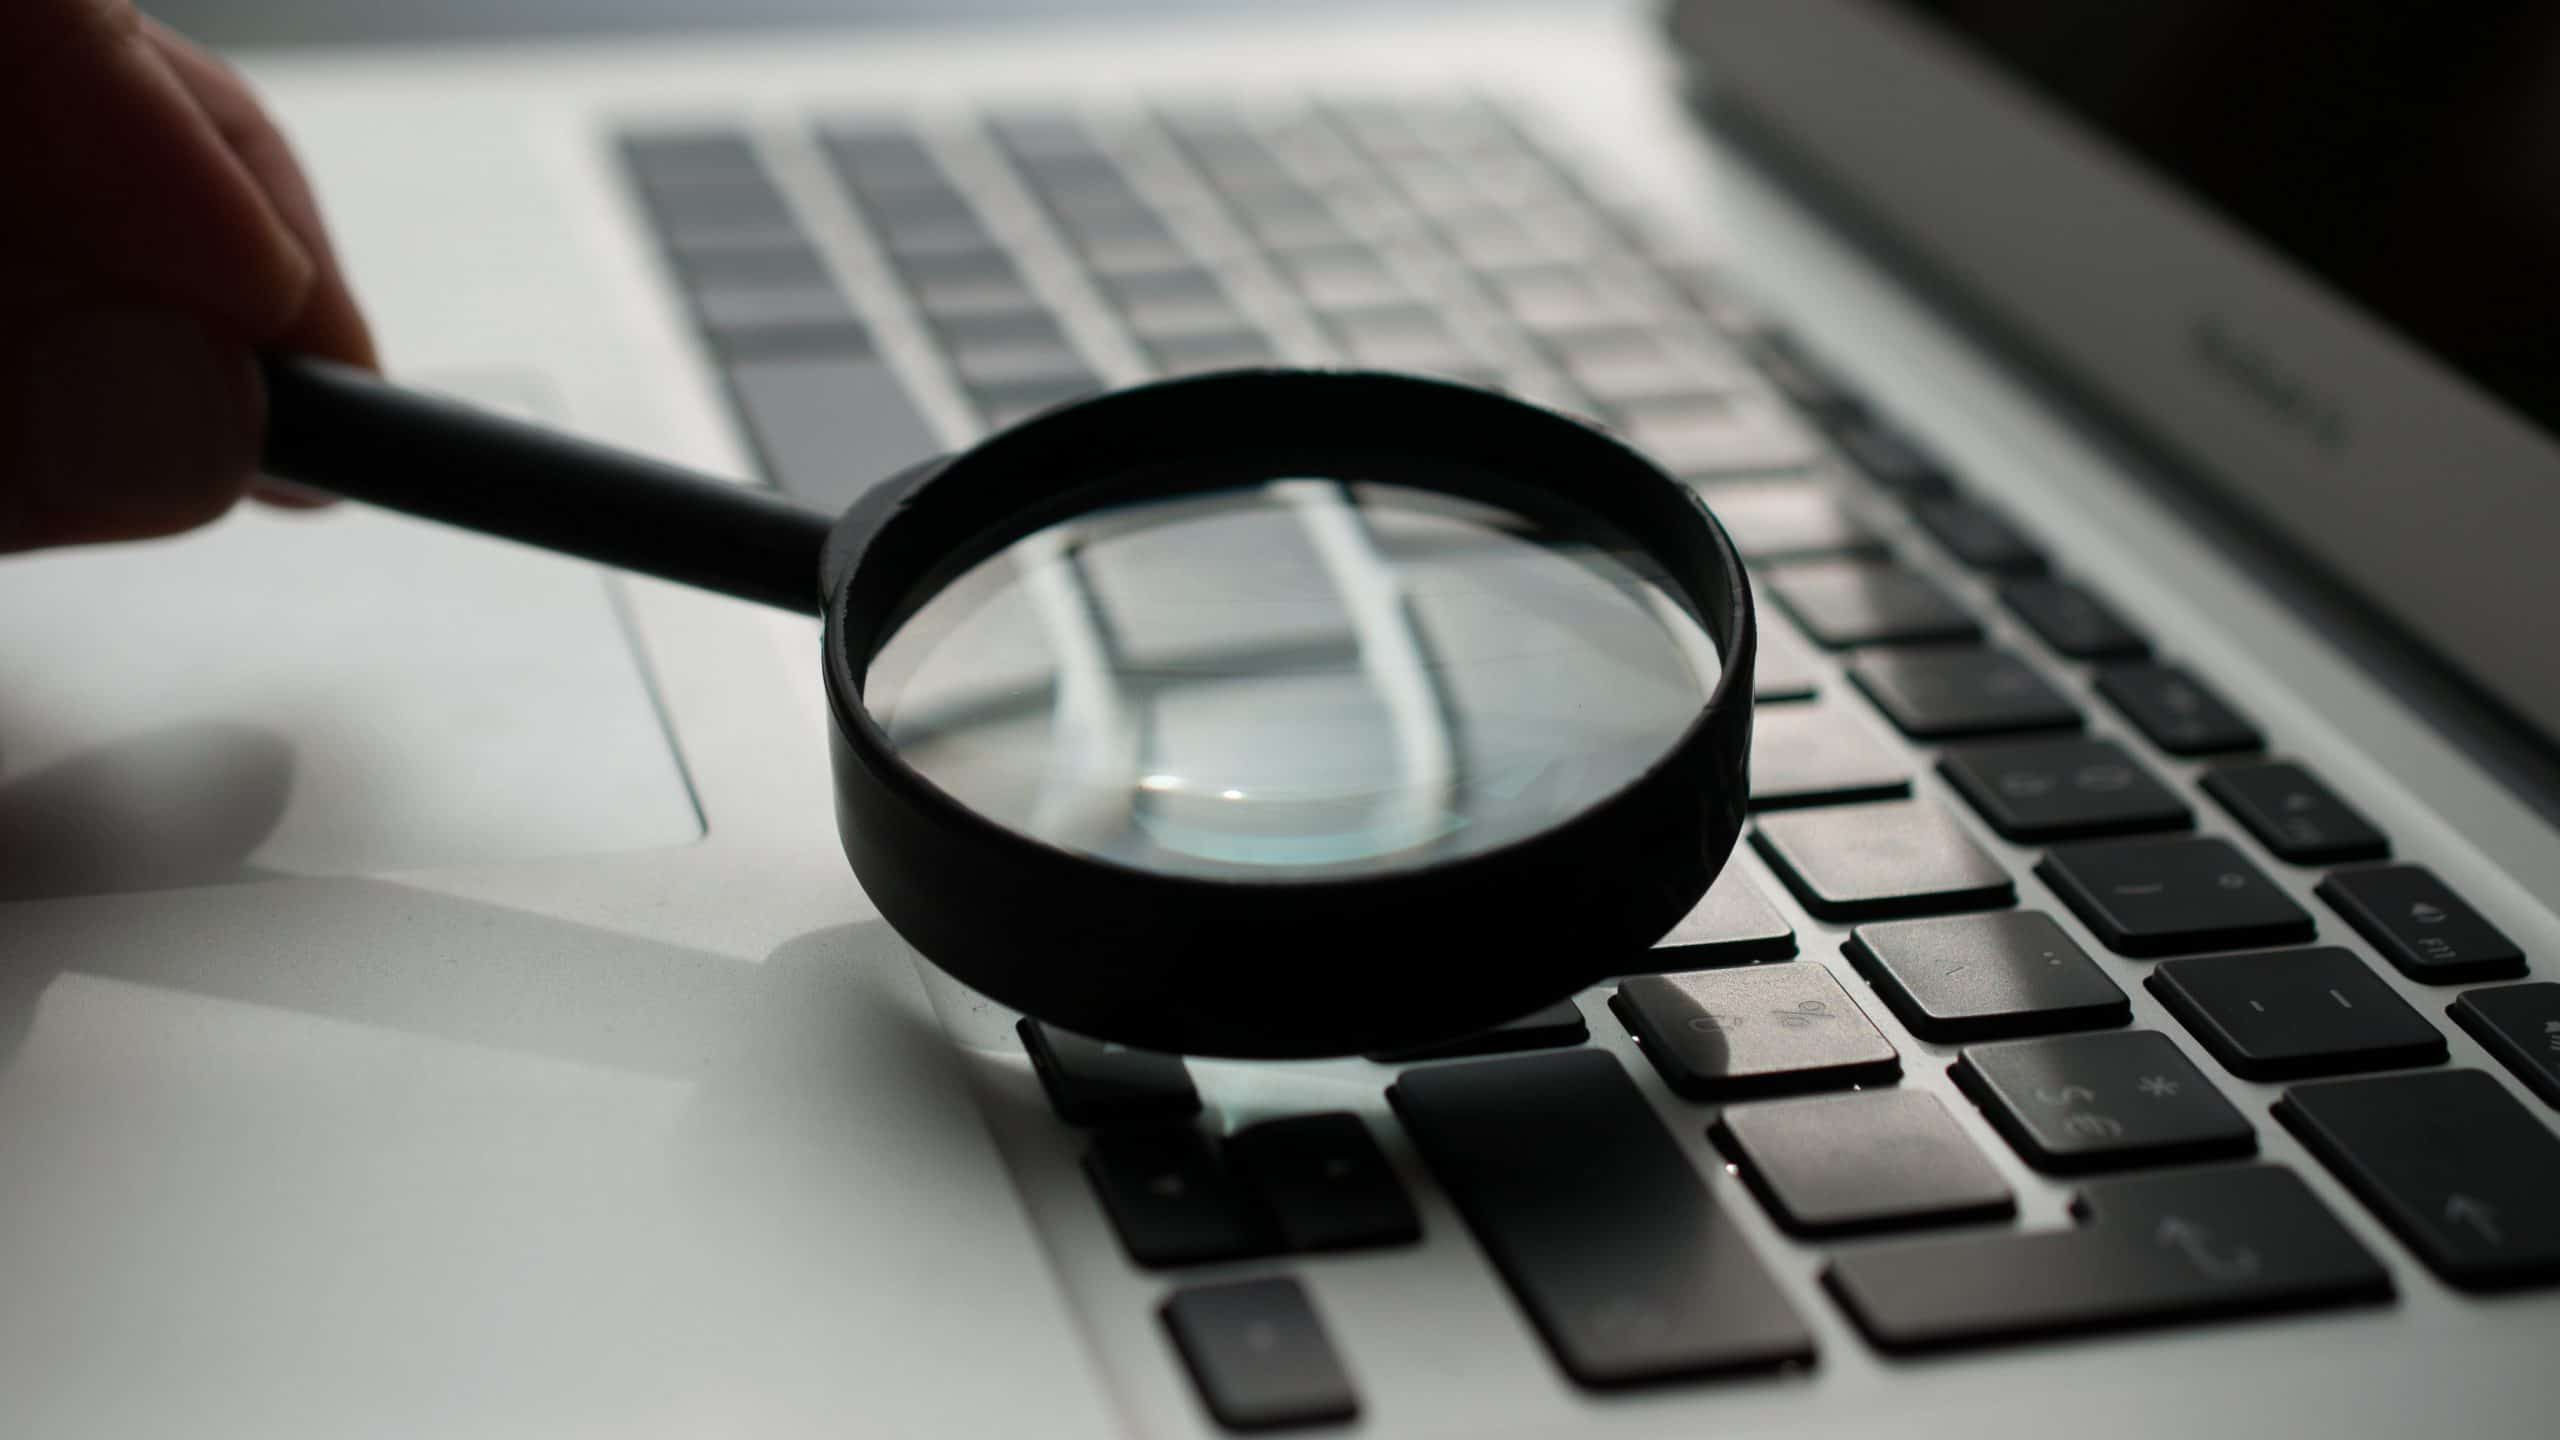 Magnifing Glass spying laptop